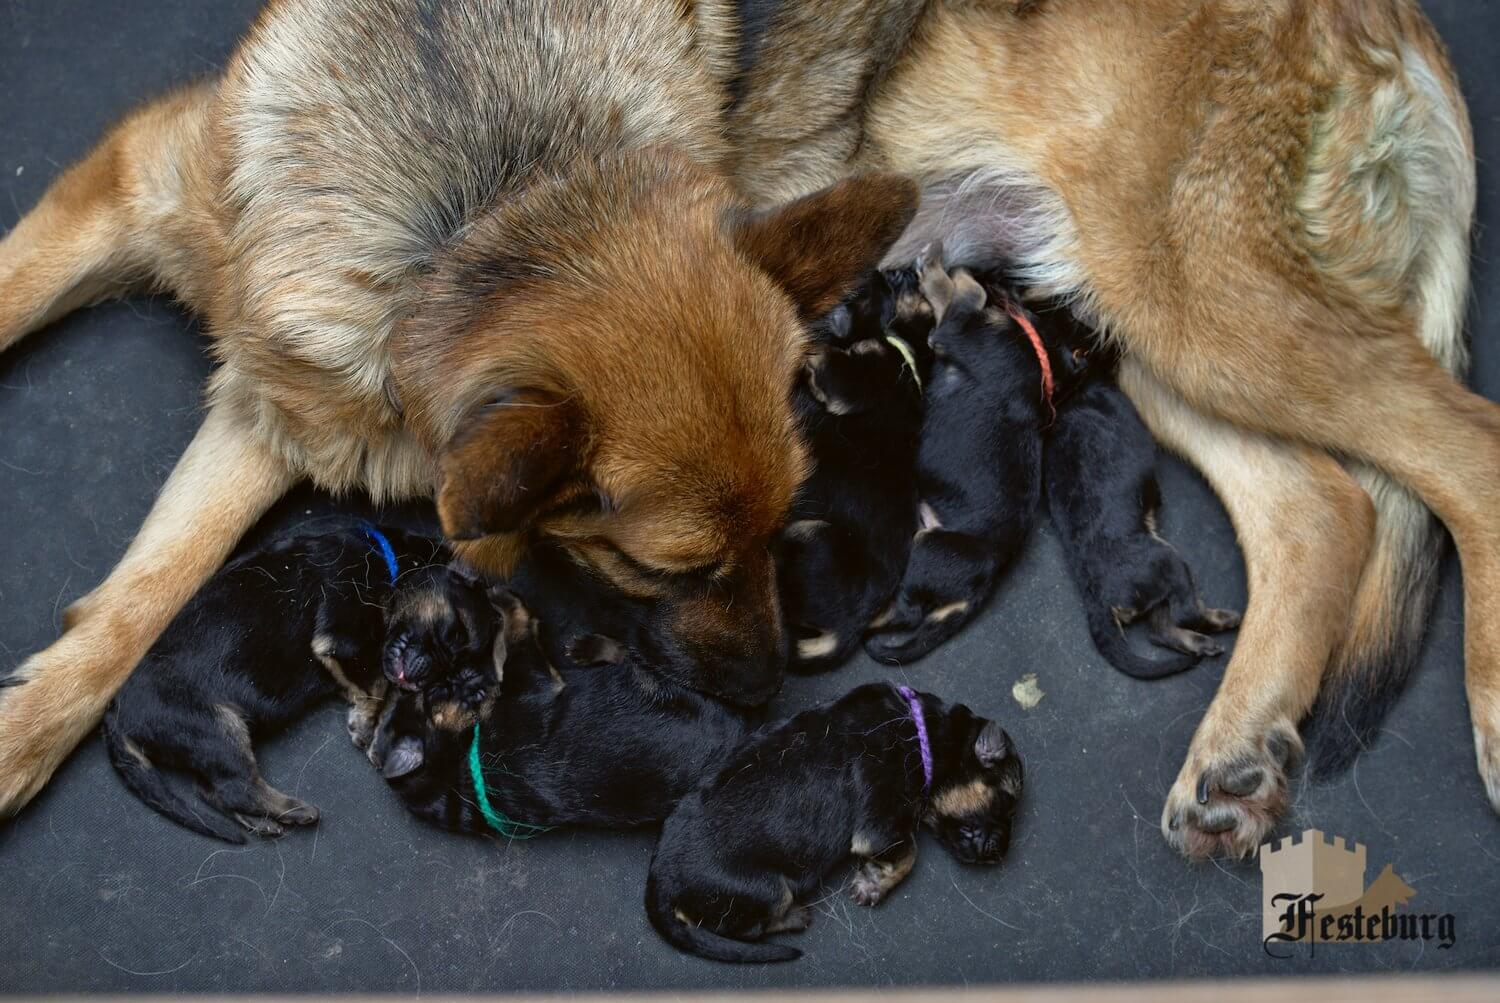 8 more puppies